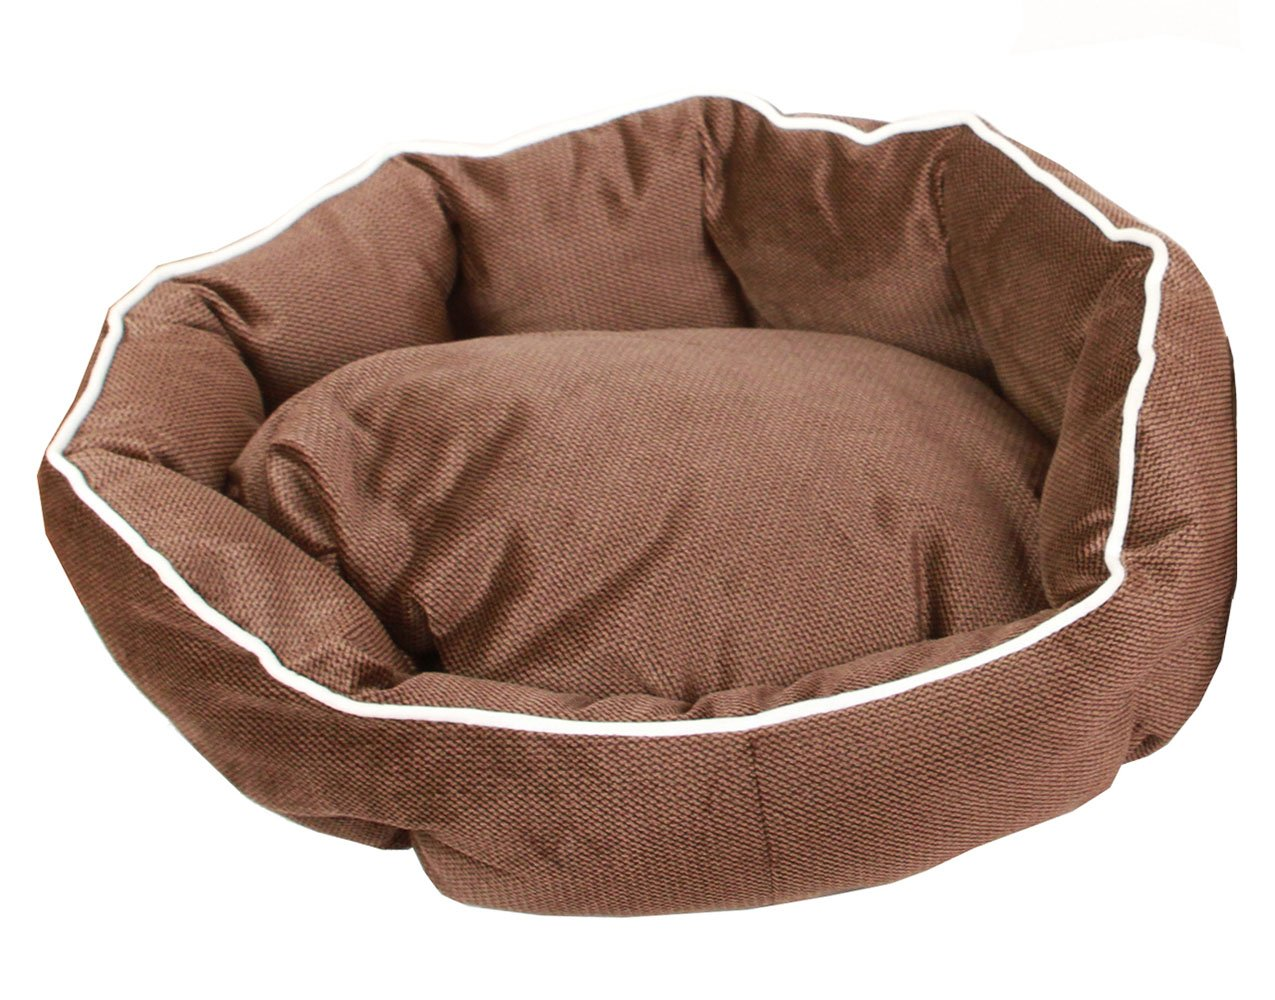 Chocolate Toy & Small Chocolate Toy & Small Mykumi Deluxe Dog Bed for Small and Toy Breed Dog and Cat, Soft Round Pet Bed Cuddler with Removable Double Sided Cushion (Toy & Small, Chocolate)